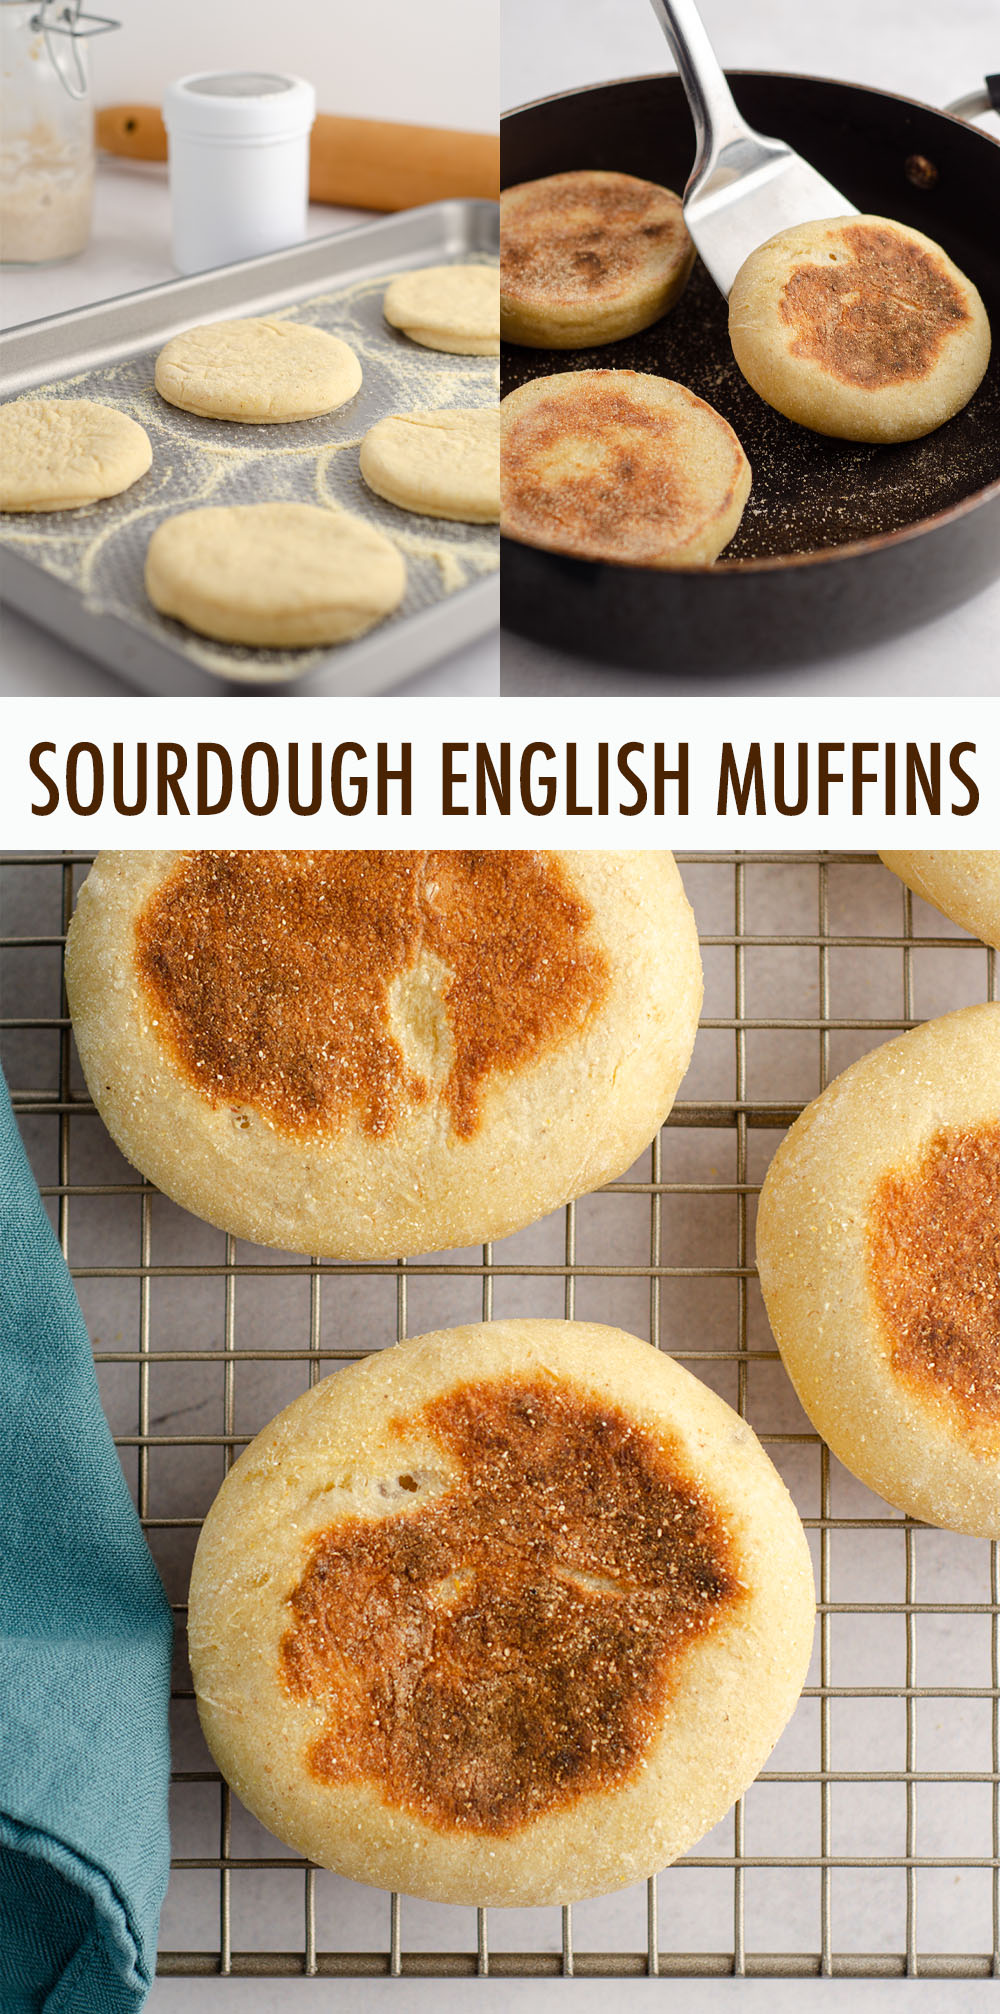 Put that sourdough starter to good use and make your own sourdough English muffins from scratch, with all the nooks and crannies you love about the store-bought ones!